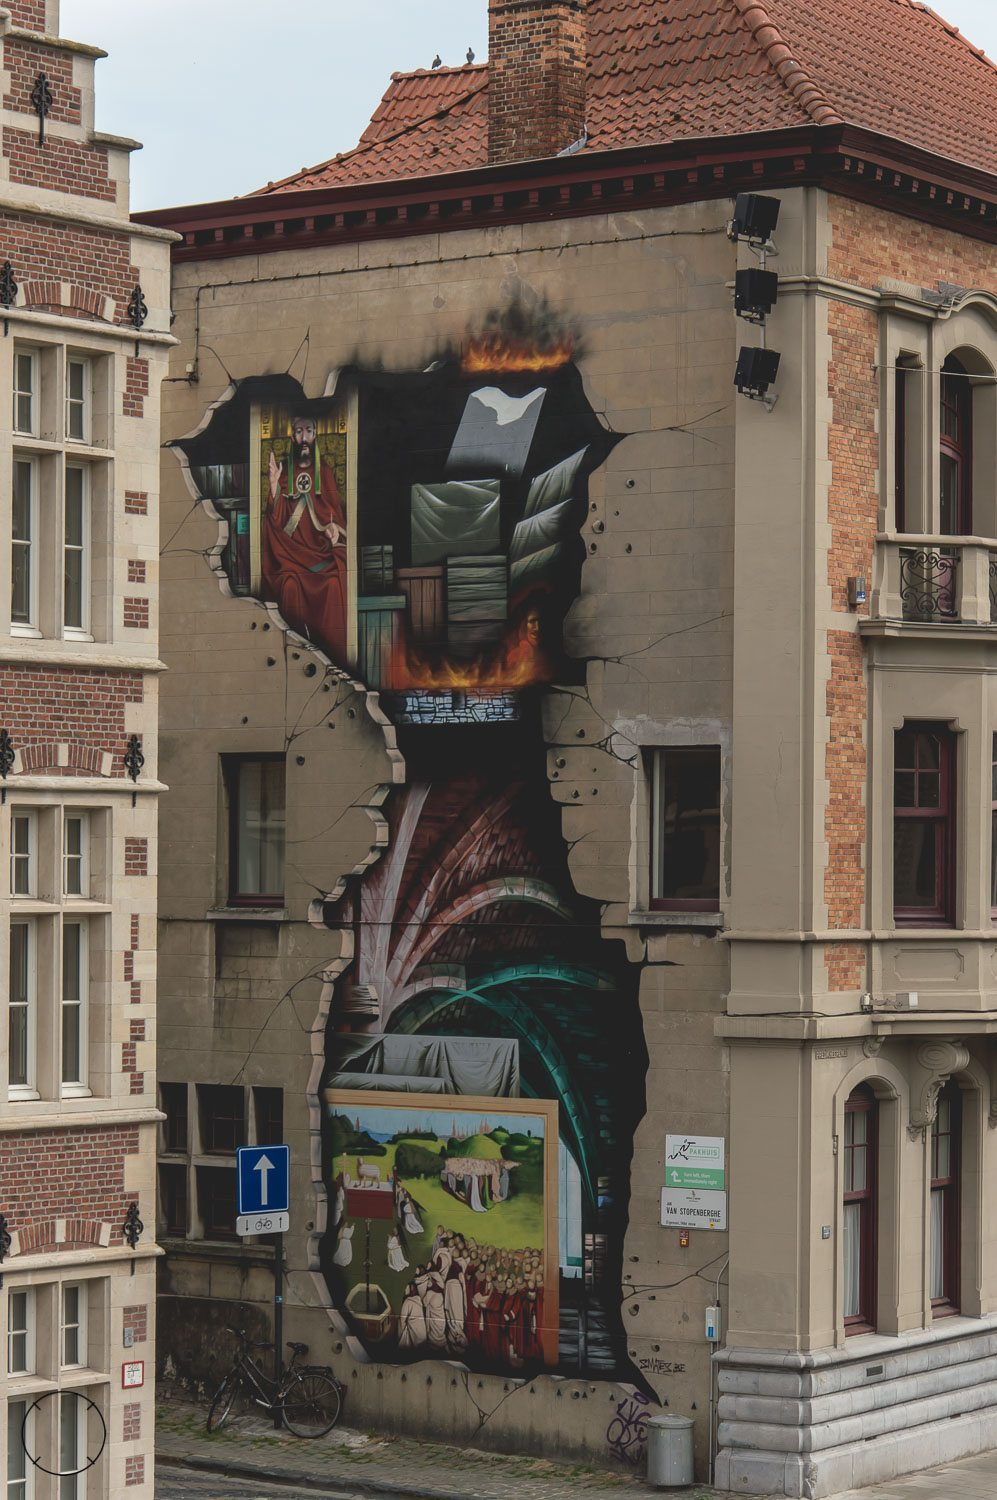 The Lam Gods in the street art route in Ghent